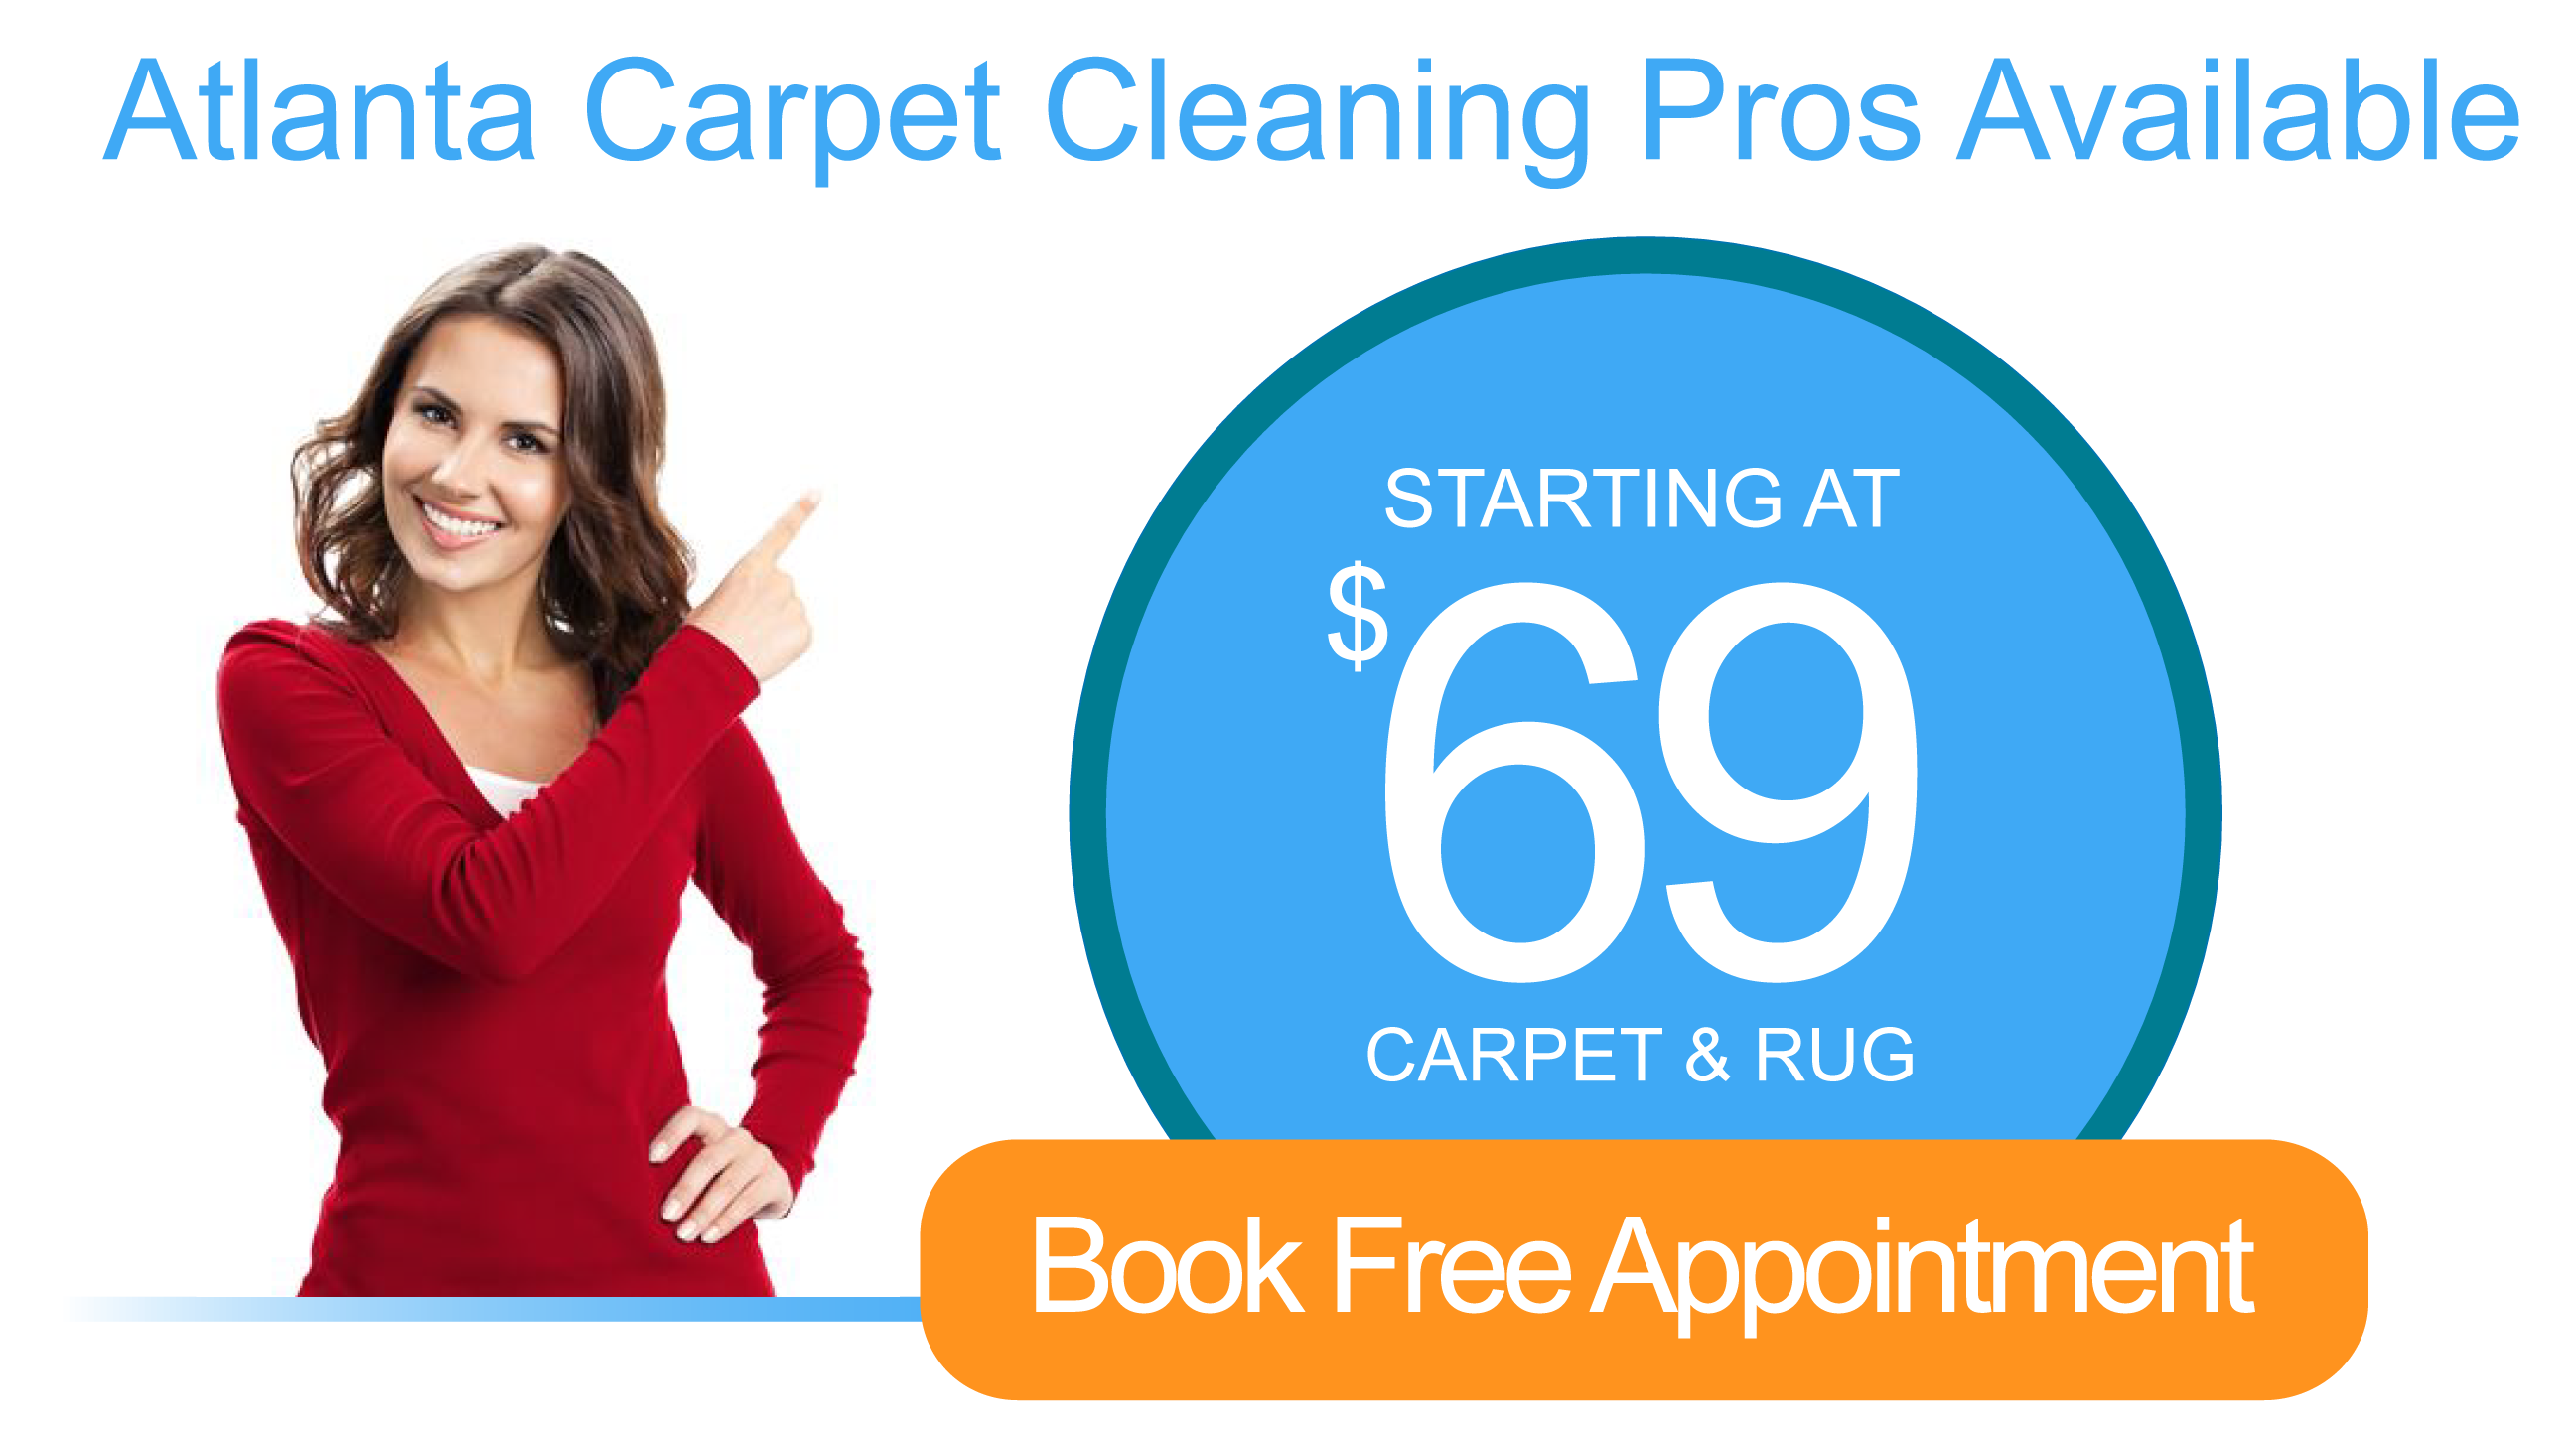 advertise your carpet cleaning business